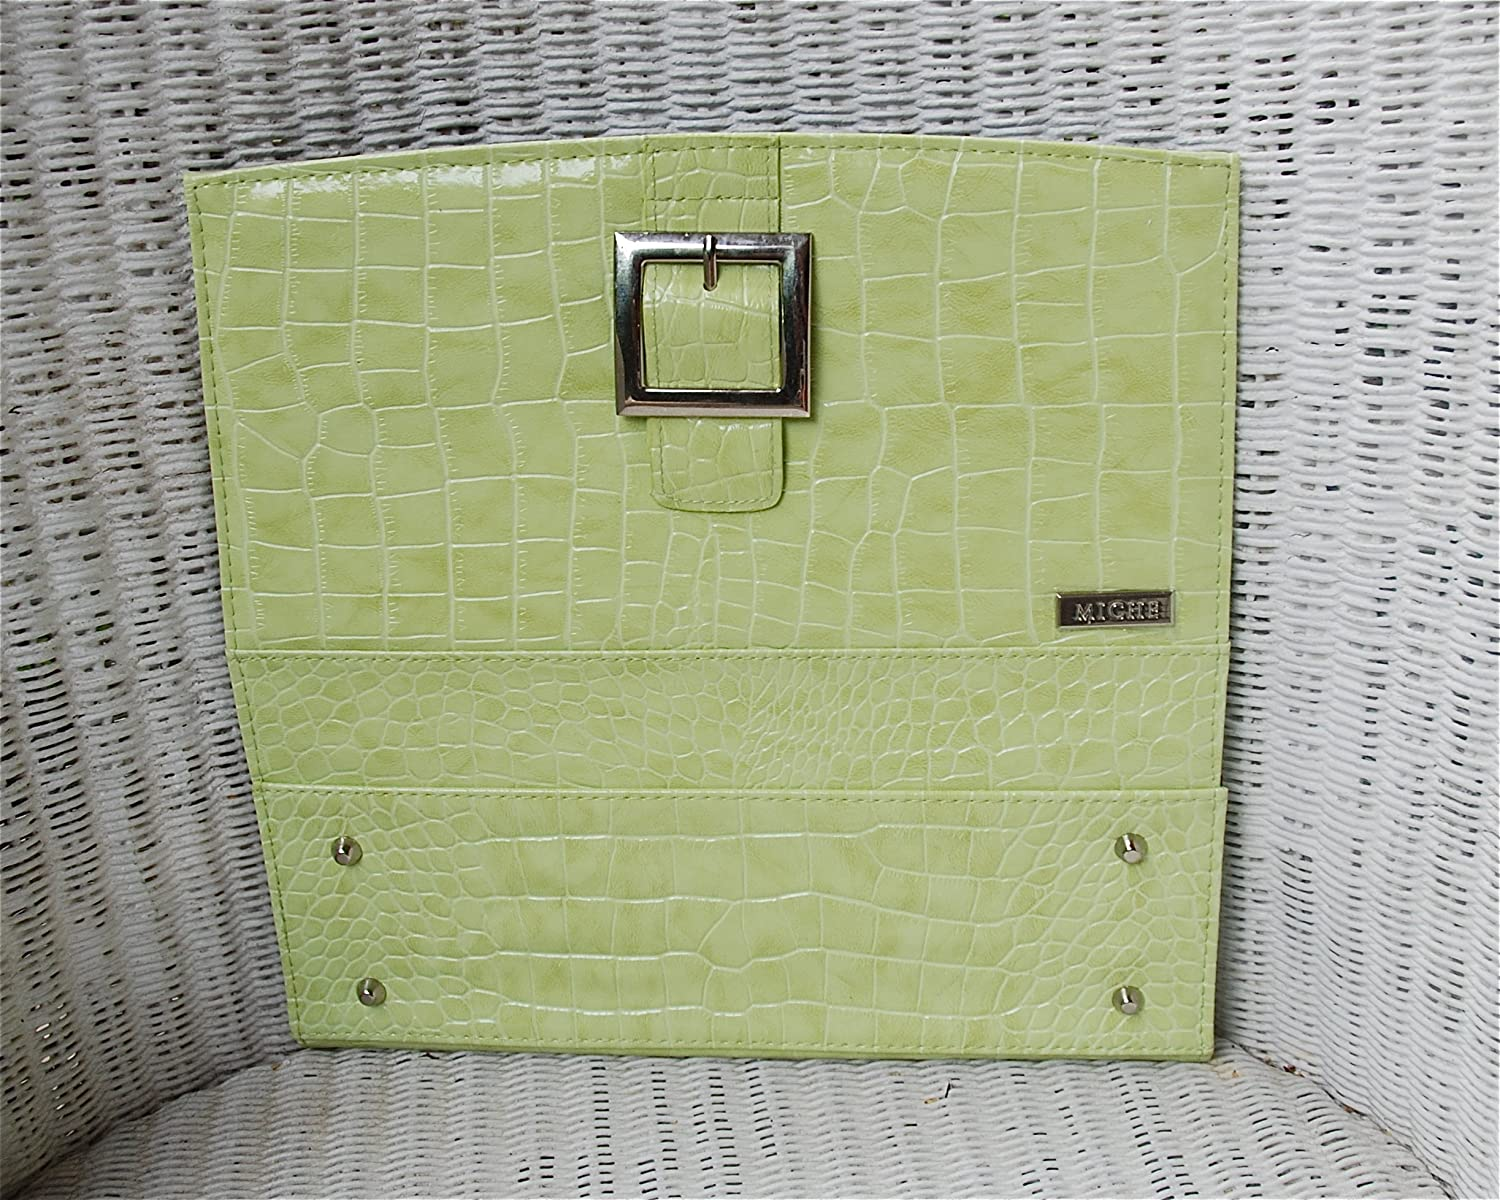 Miche Classic Shell Green Ellie with Dustbag